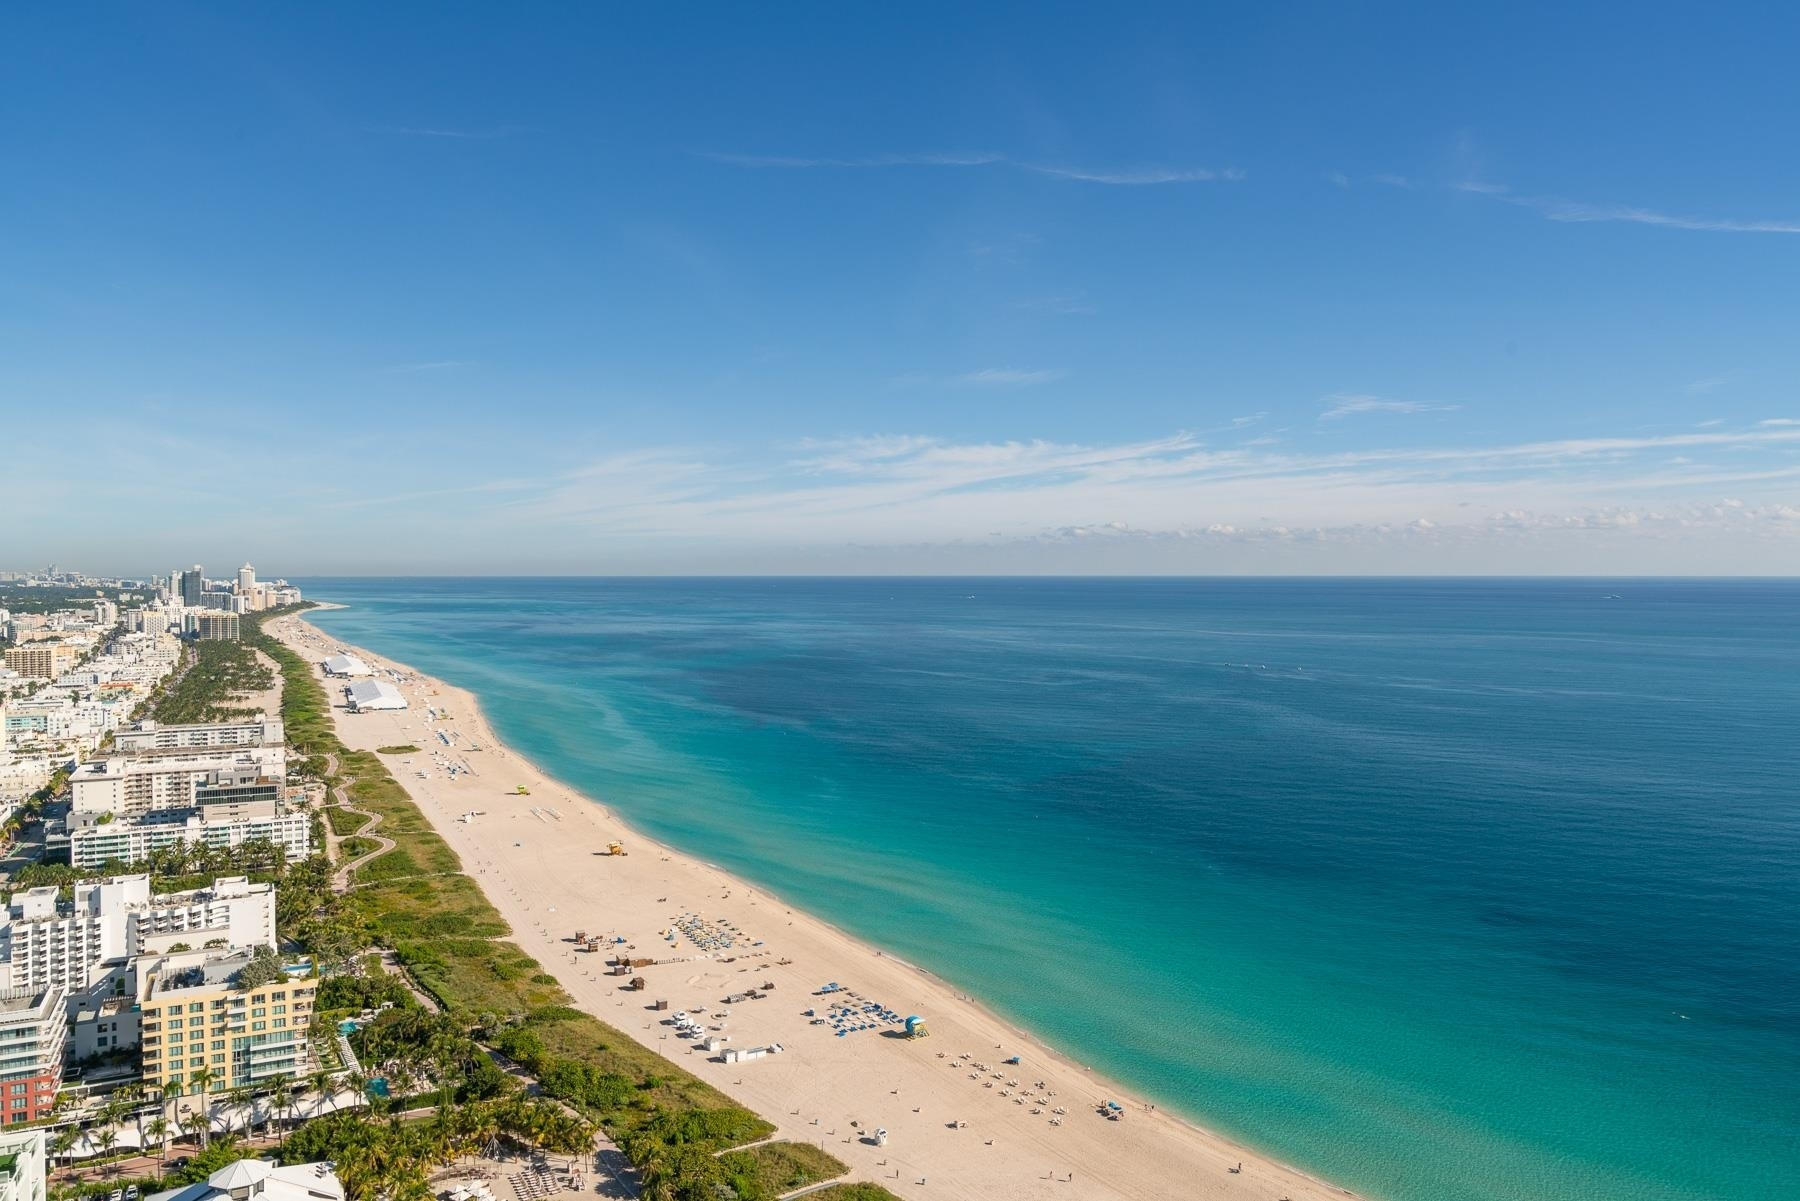 10. Condominiums for Sale at 100 S Pointe Drive , 3804/5 South Point, Miami Beach, FL 33139